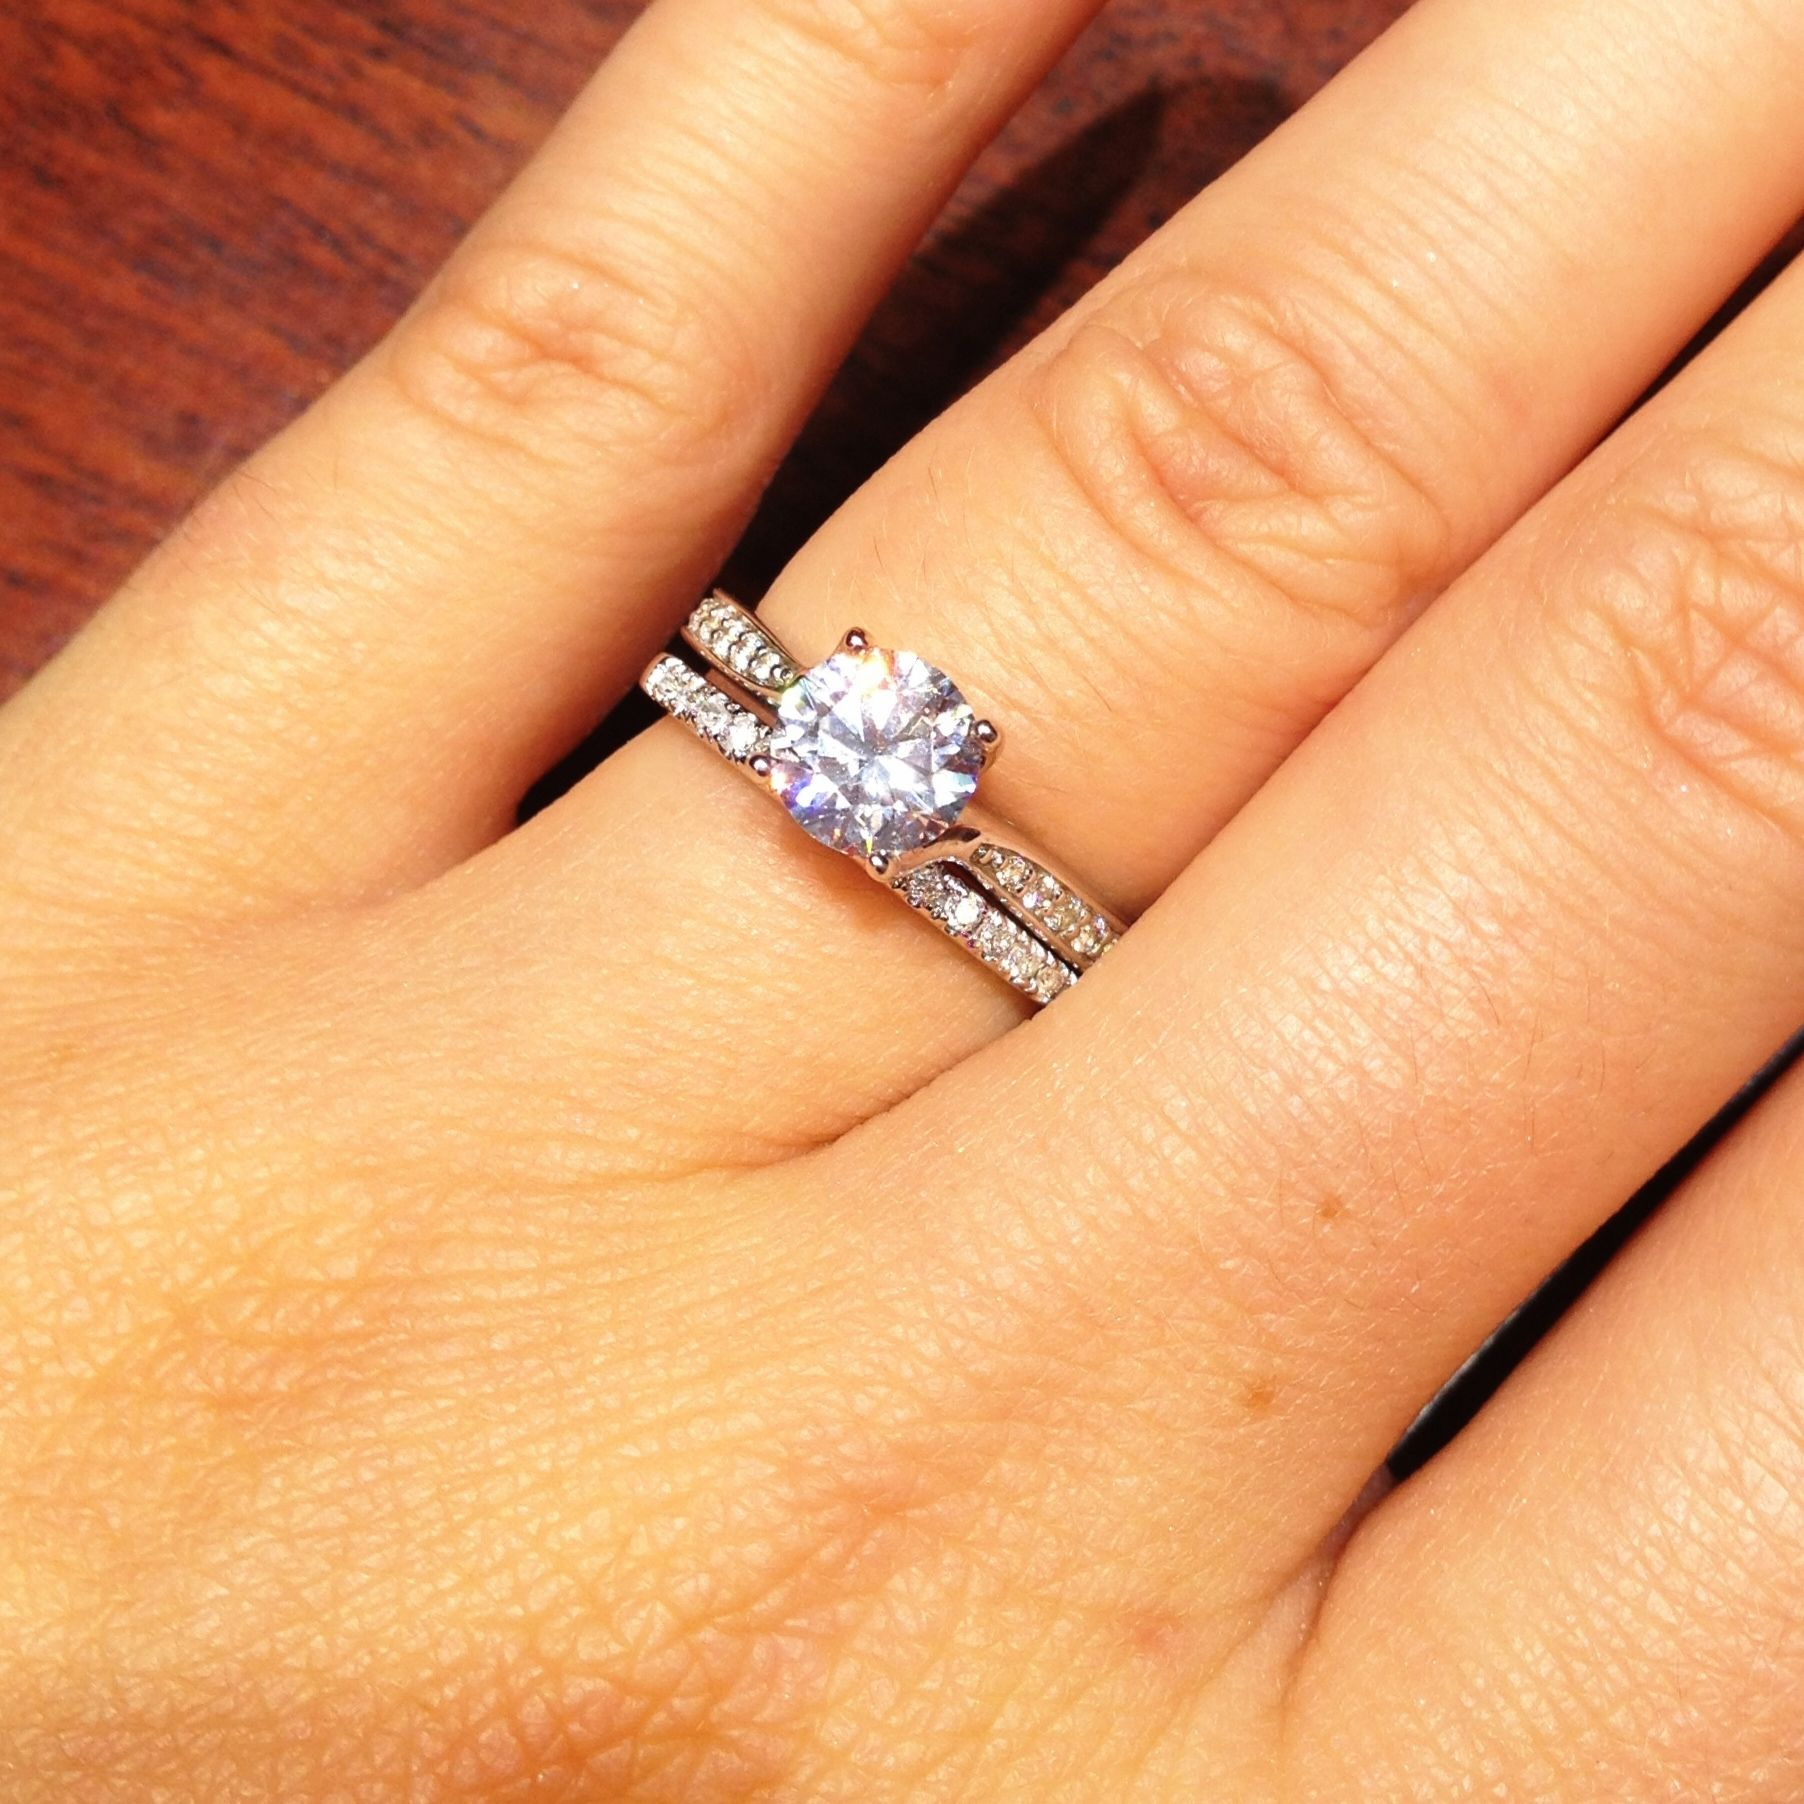 wedding band rings 1 Carat Round Solitaire Engagement Ring Wedding Band